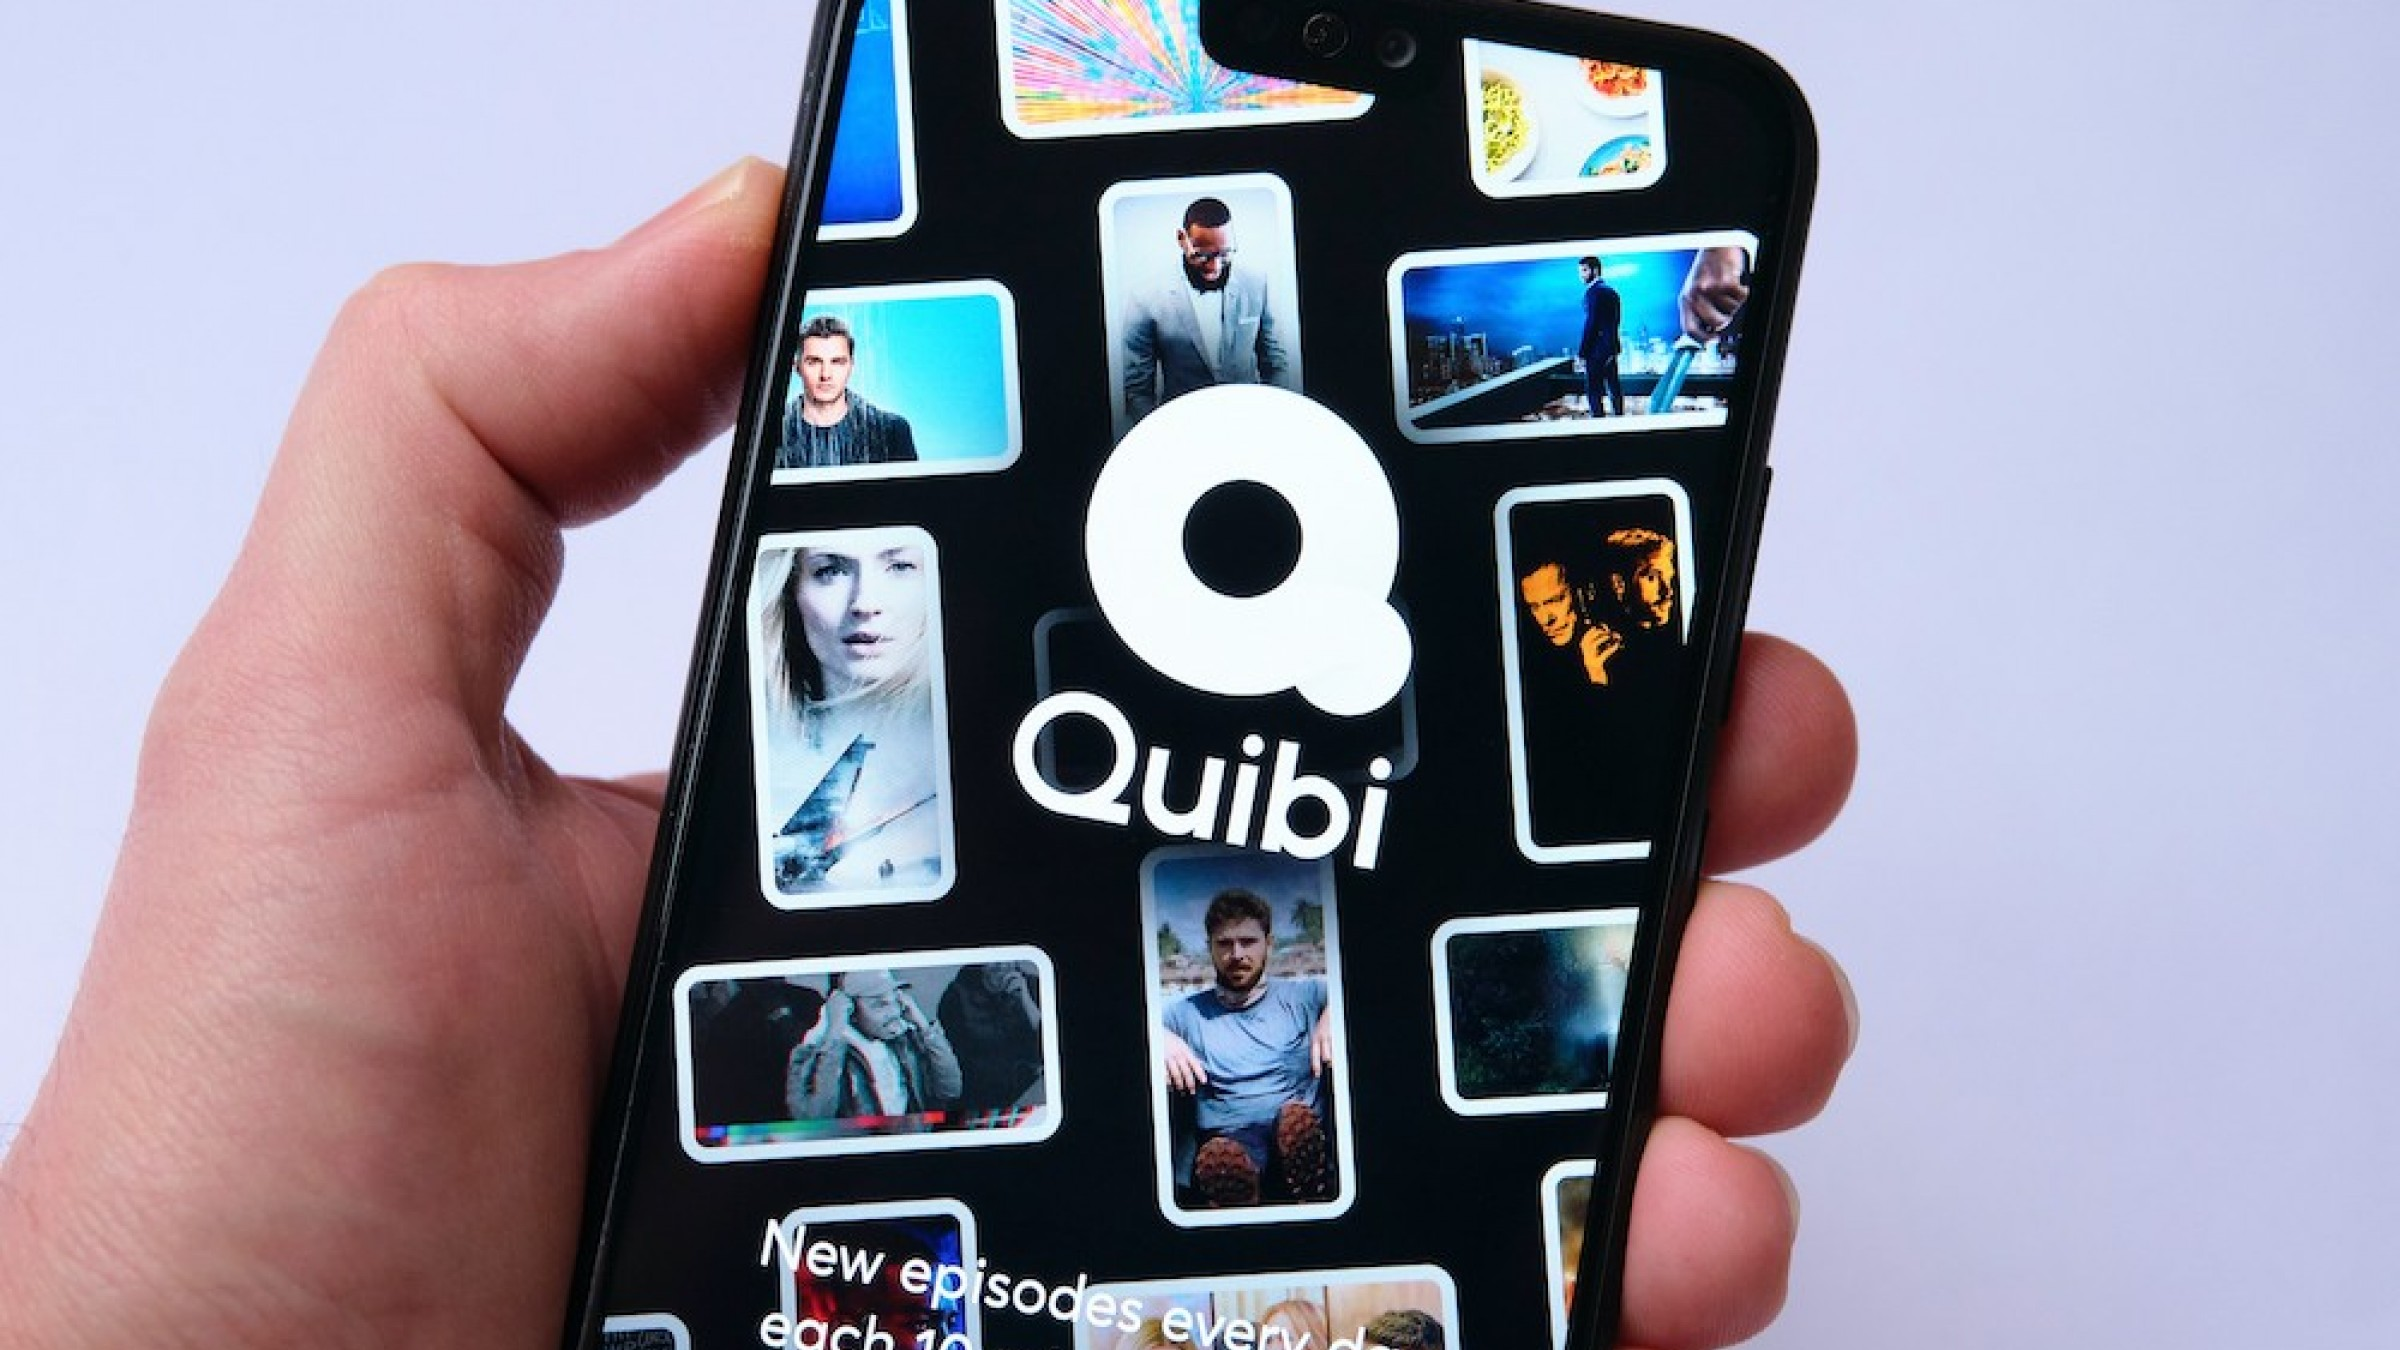 What Should You Do If Quibi (or Anybody) Steals Your Footage?